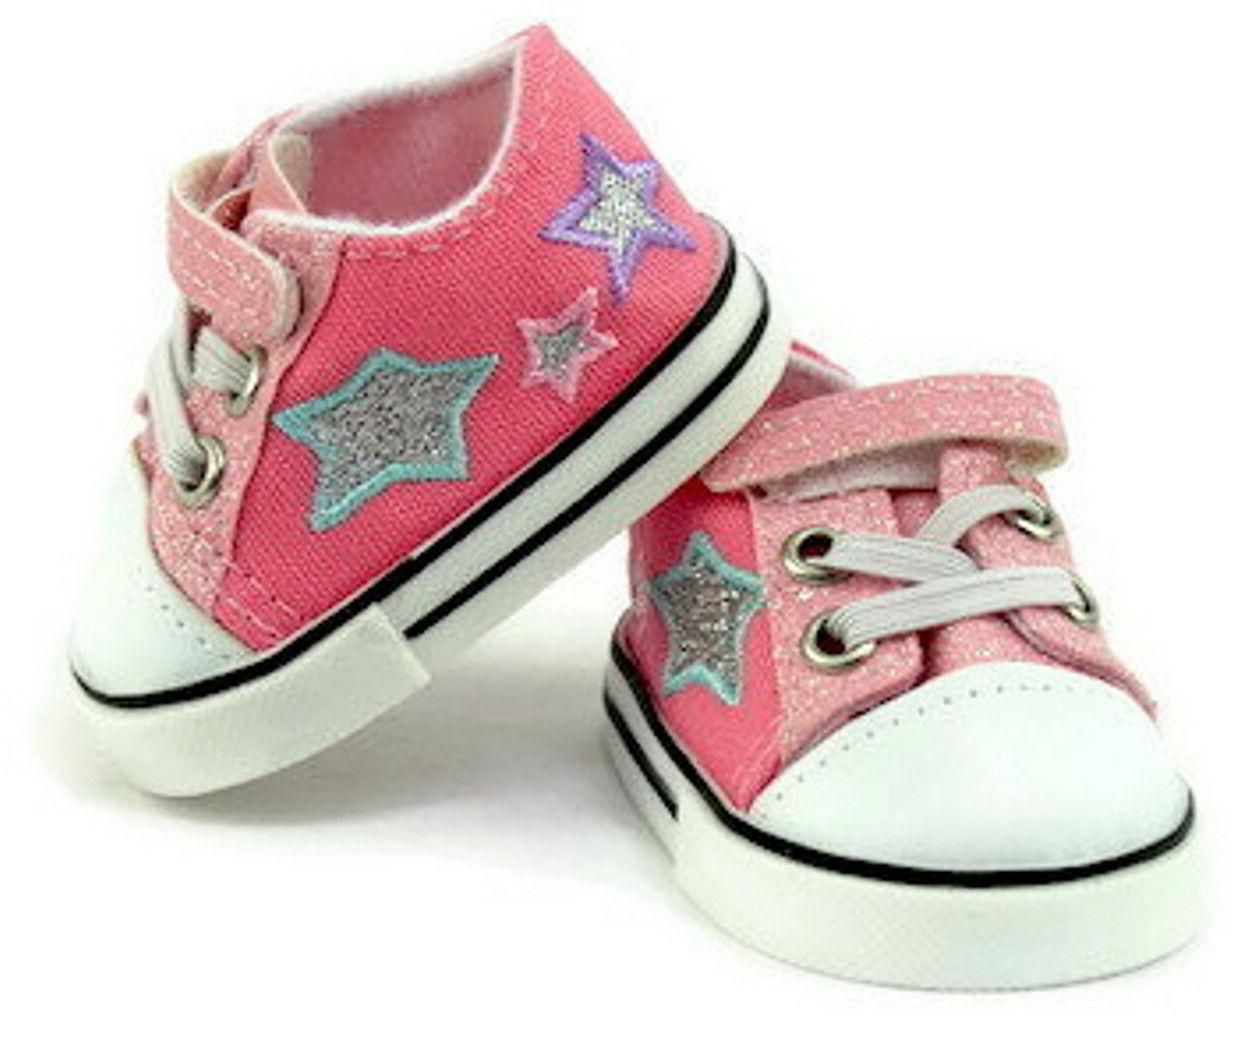 pink glitter and stars tennis shoes sneakers